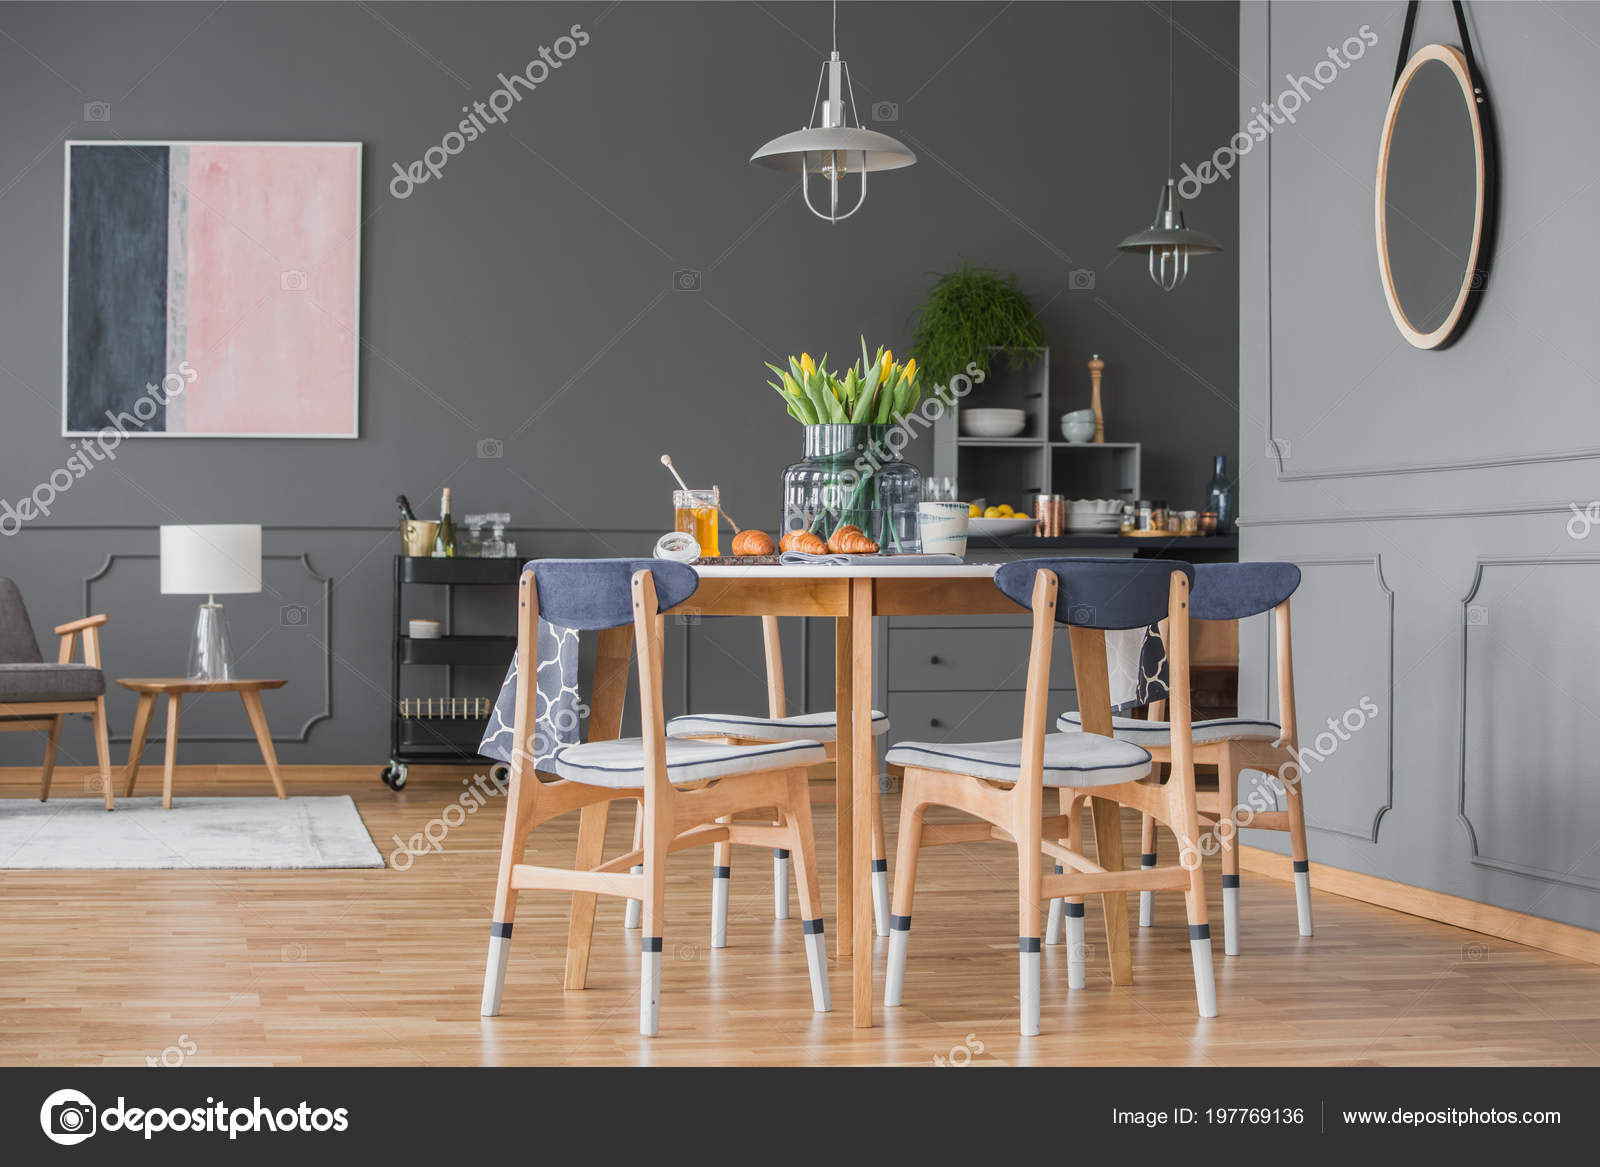 Mirror Grey Wall Molding Open Space Interior Dining Table Pastel Stock Photo Image By Photographee Eu 197769136